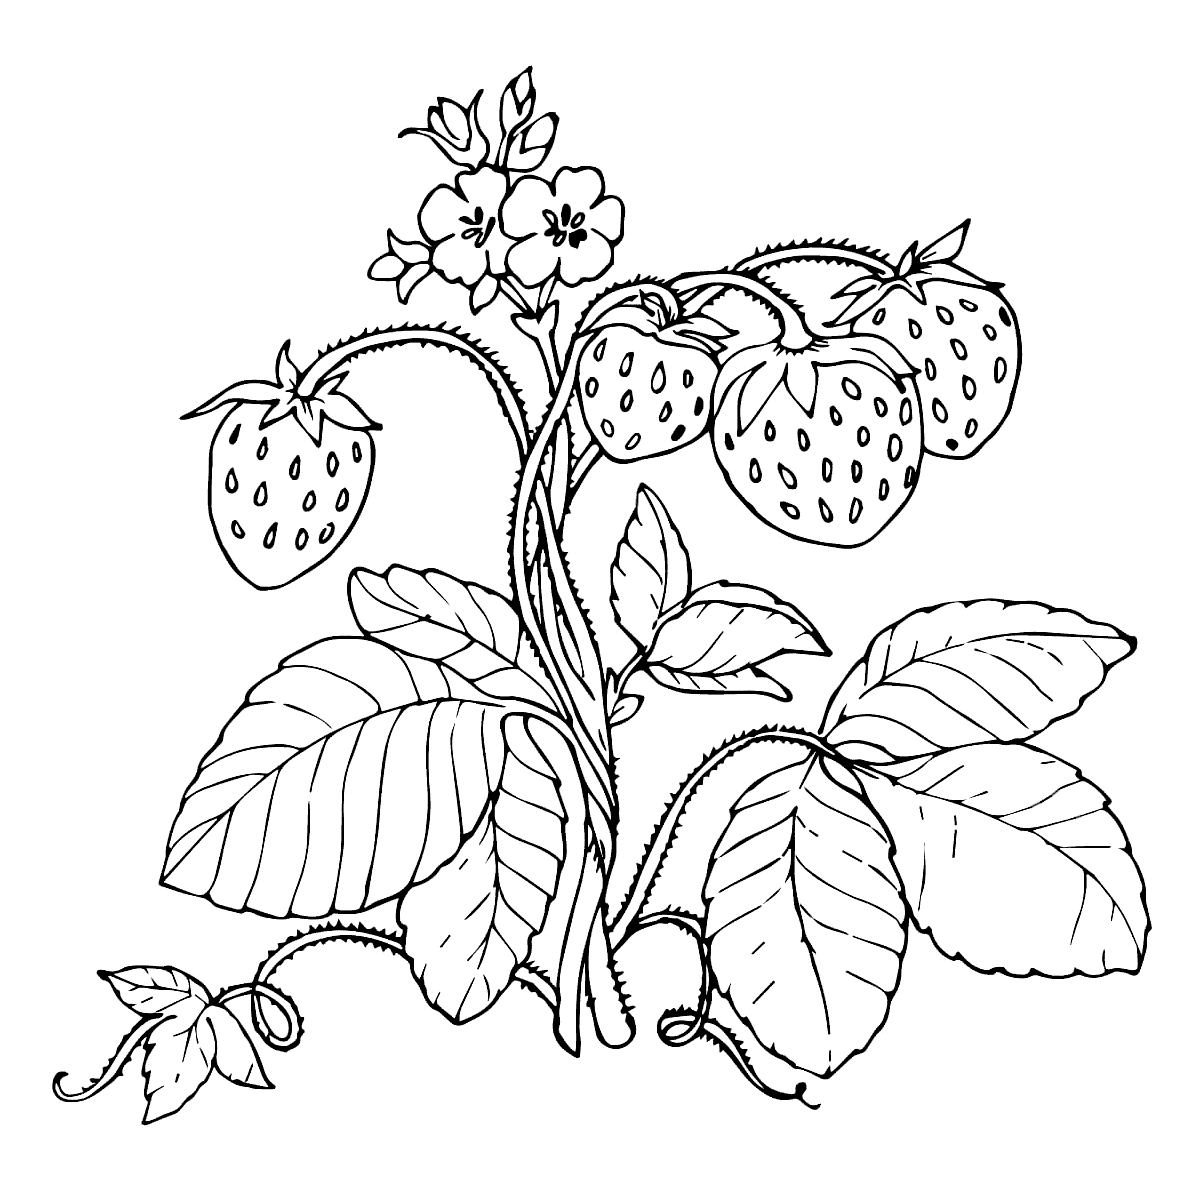 1200x1200 Strawberry Plant Coloring Page With Red Strawberries